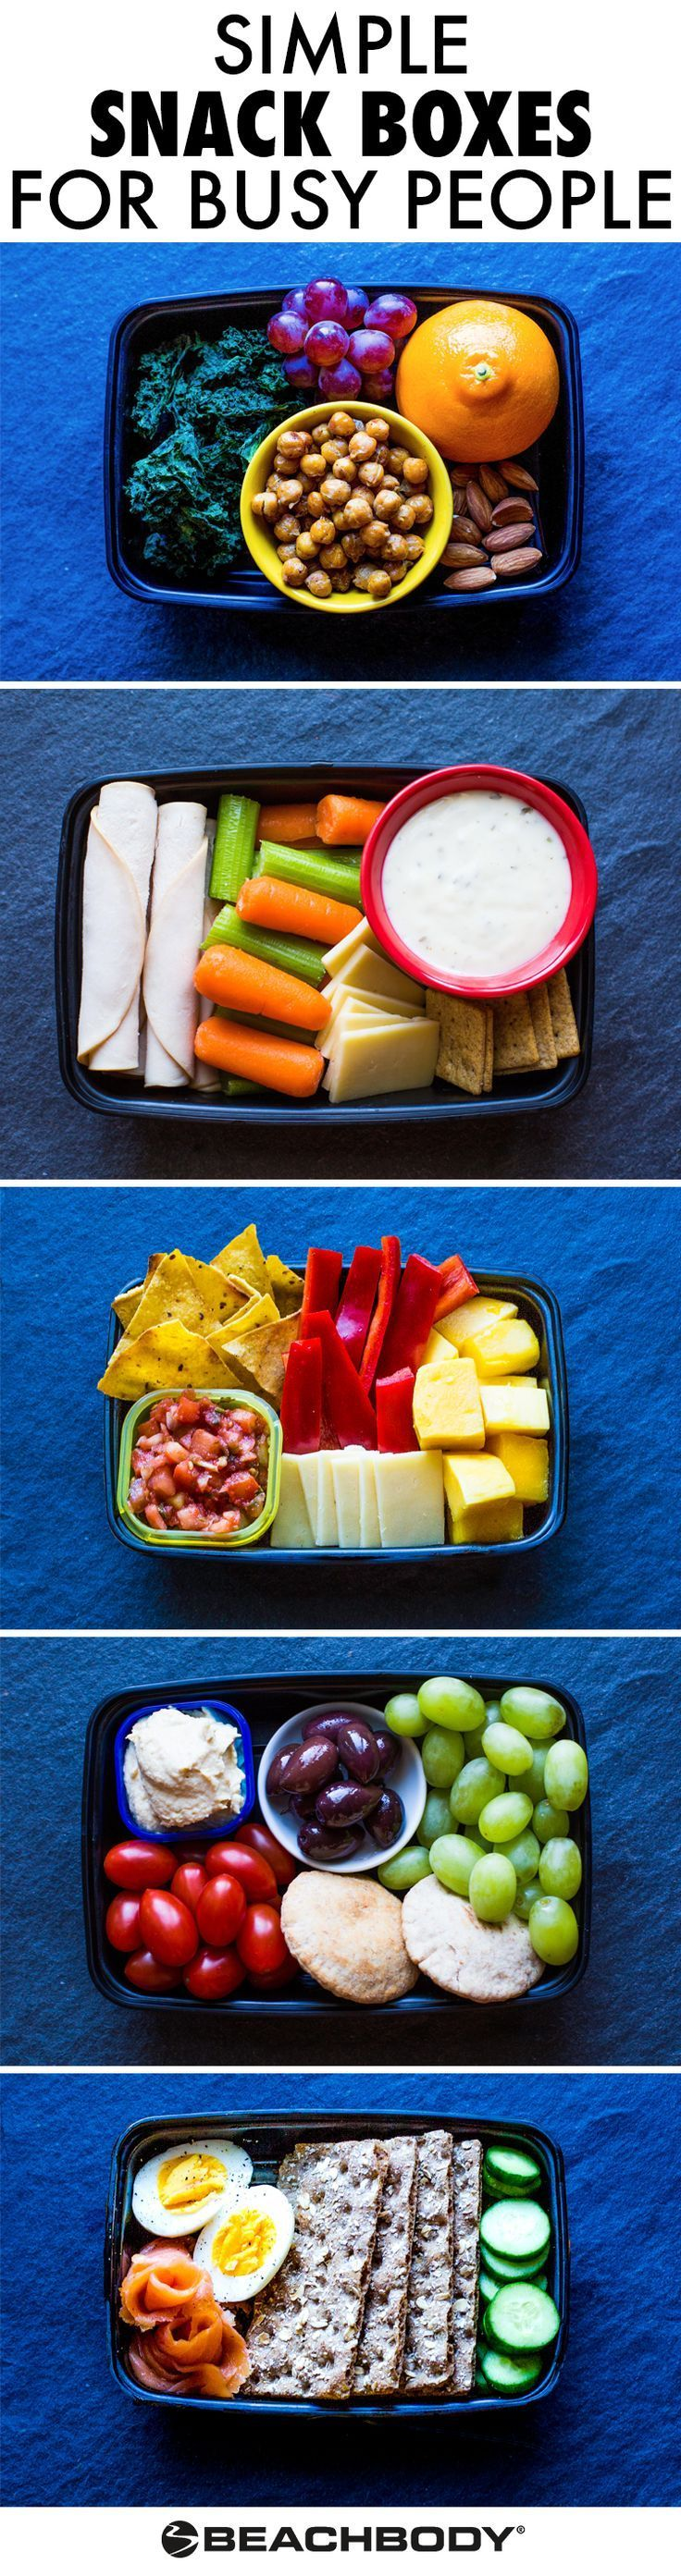 These grab-and-go snack boxes are easy to put together and each one is loaded with protein and fiber to satisfy that mid-afternoon rumble in your tummy. // snacks // meal prep // back to school // quick and simple // snack ideas // healthy food // eat cle